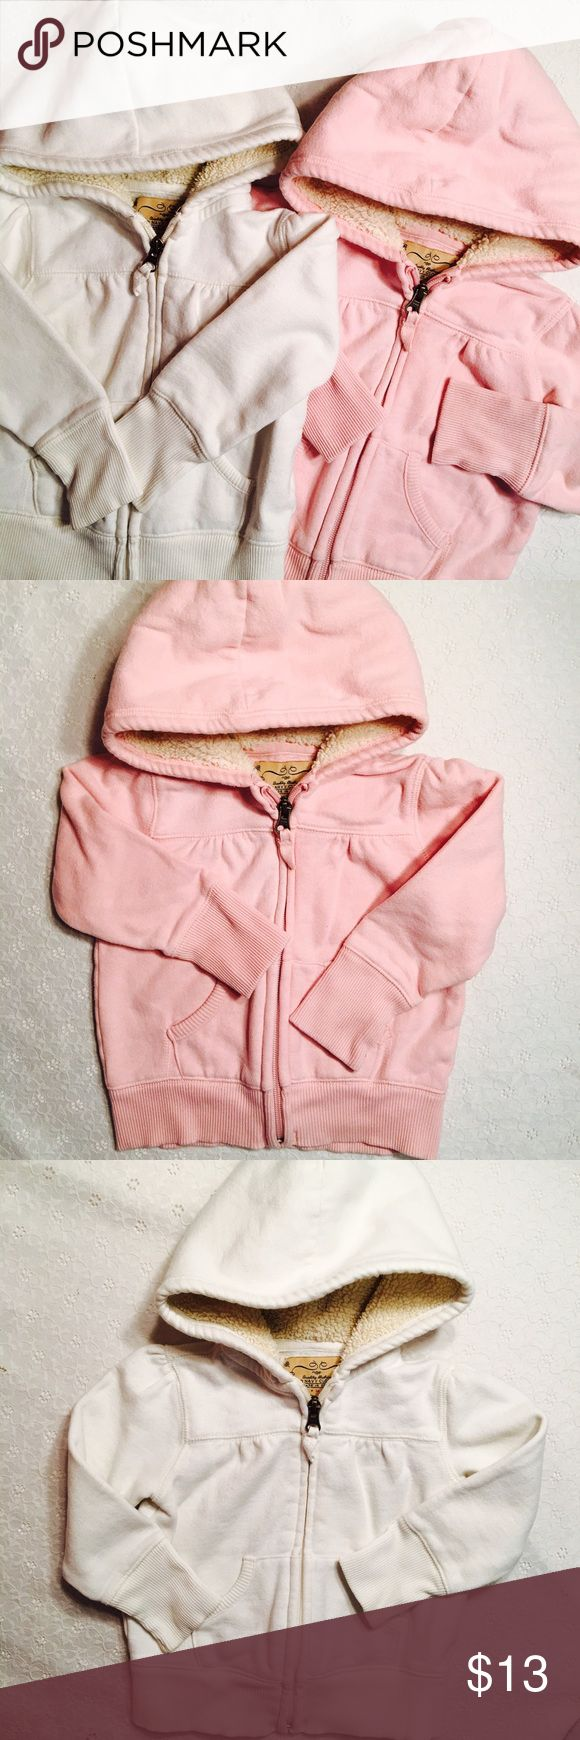 Toddler Old Navy hoodies Toddler Old Navy hoodies. One pink, one white. Both in good used condition. Both size 2T. Old Navy Jackets & Coats